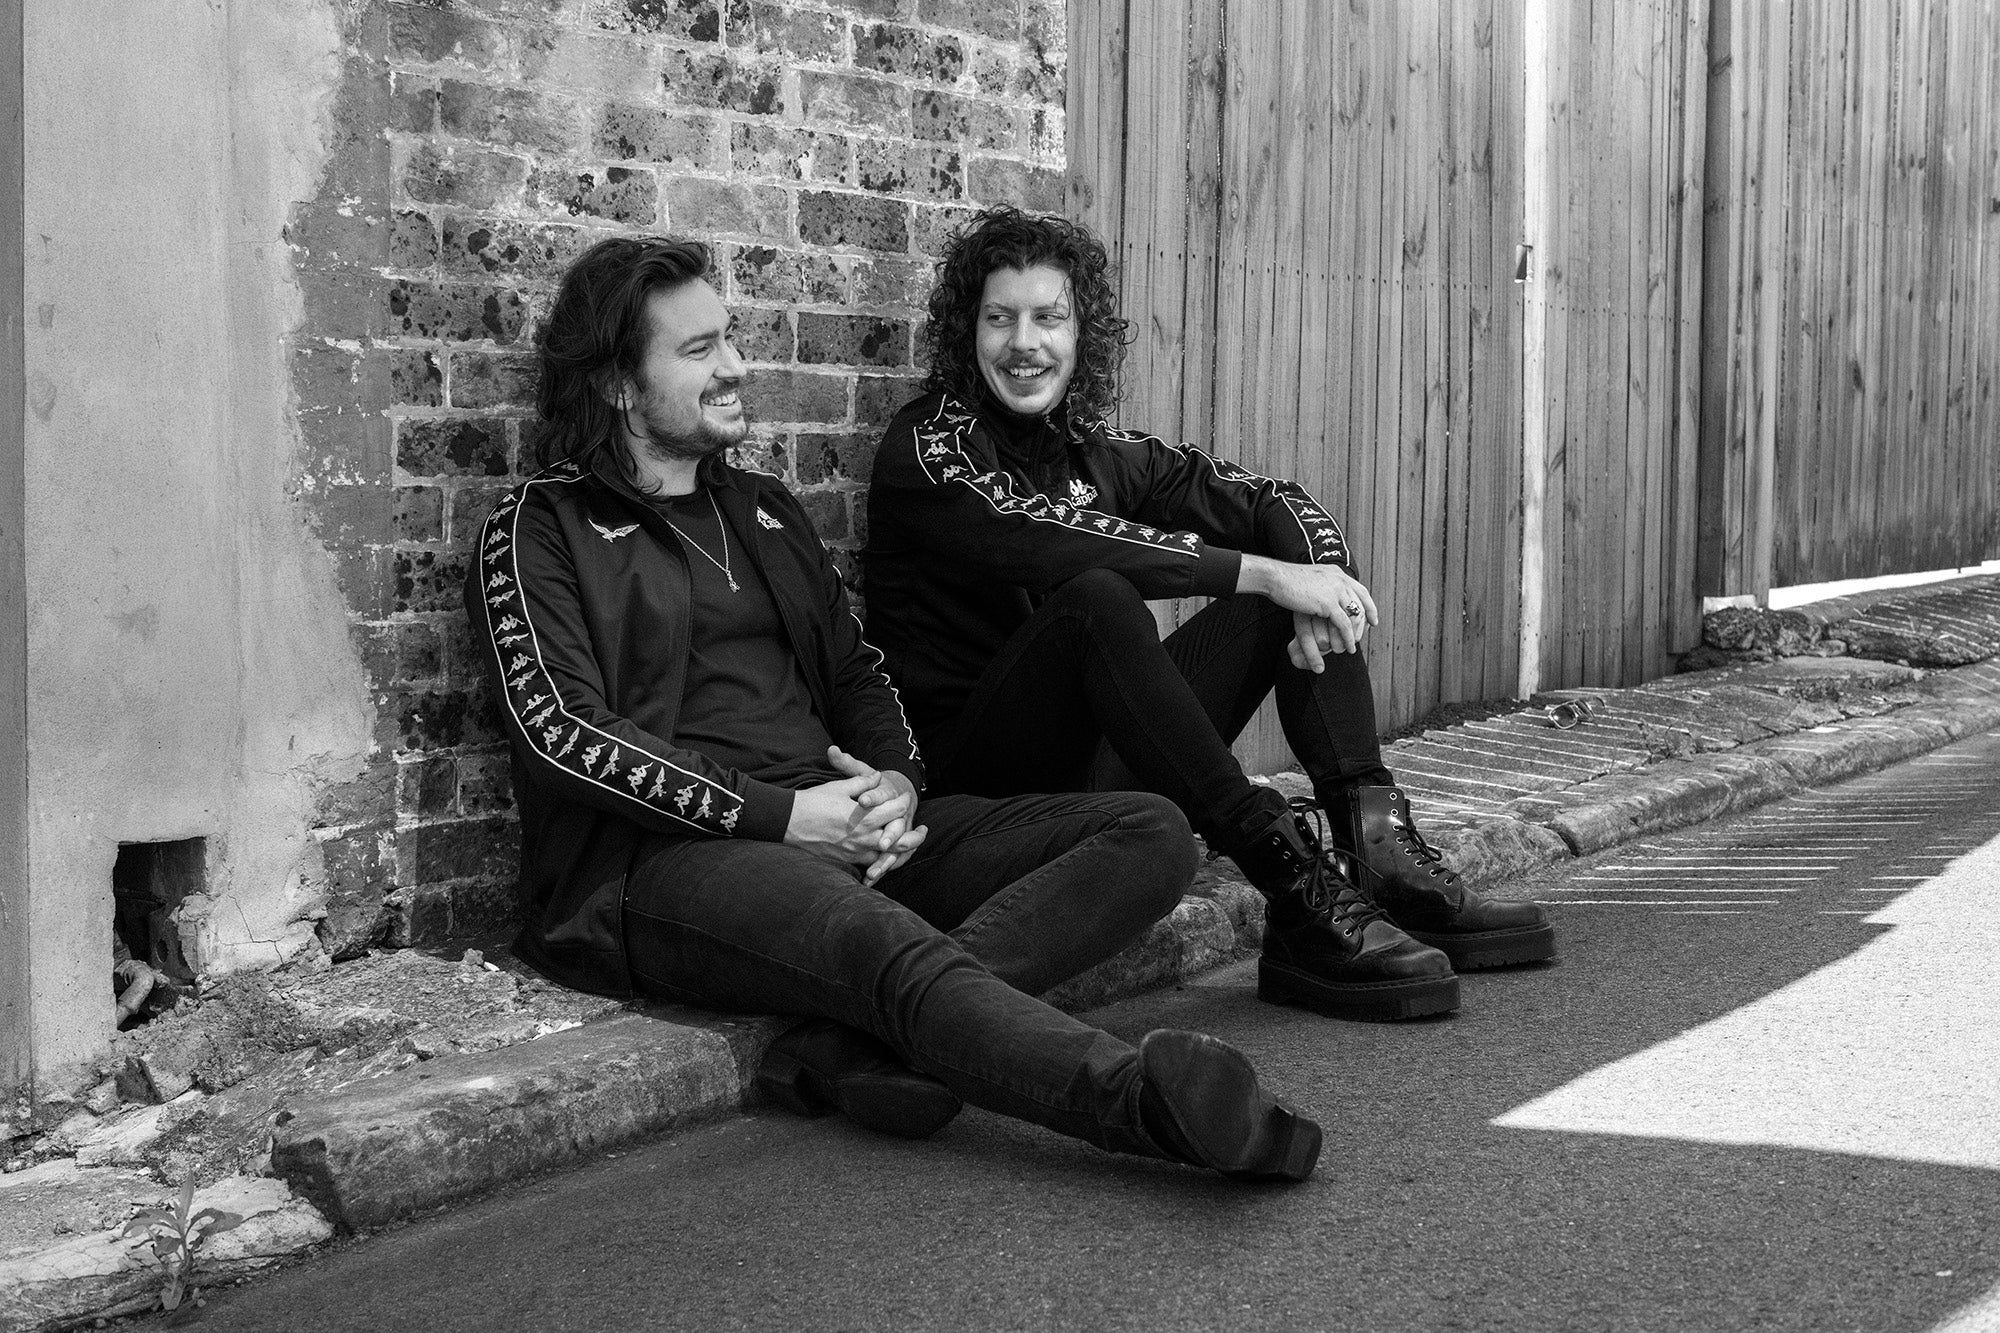 Kappa x Peking Duk Interview: Our Gift To You!